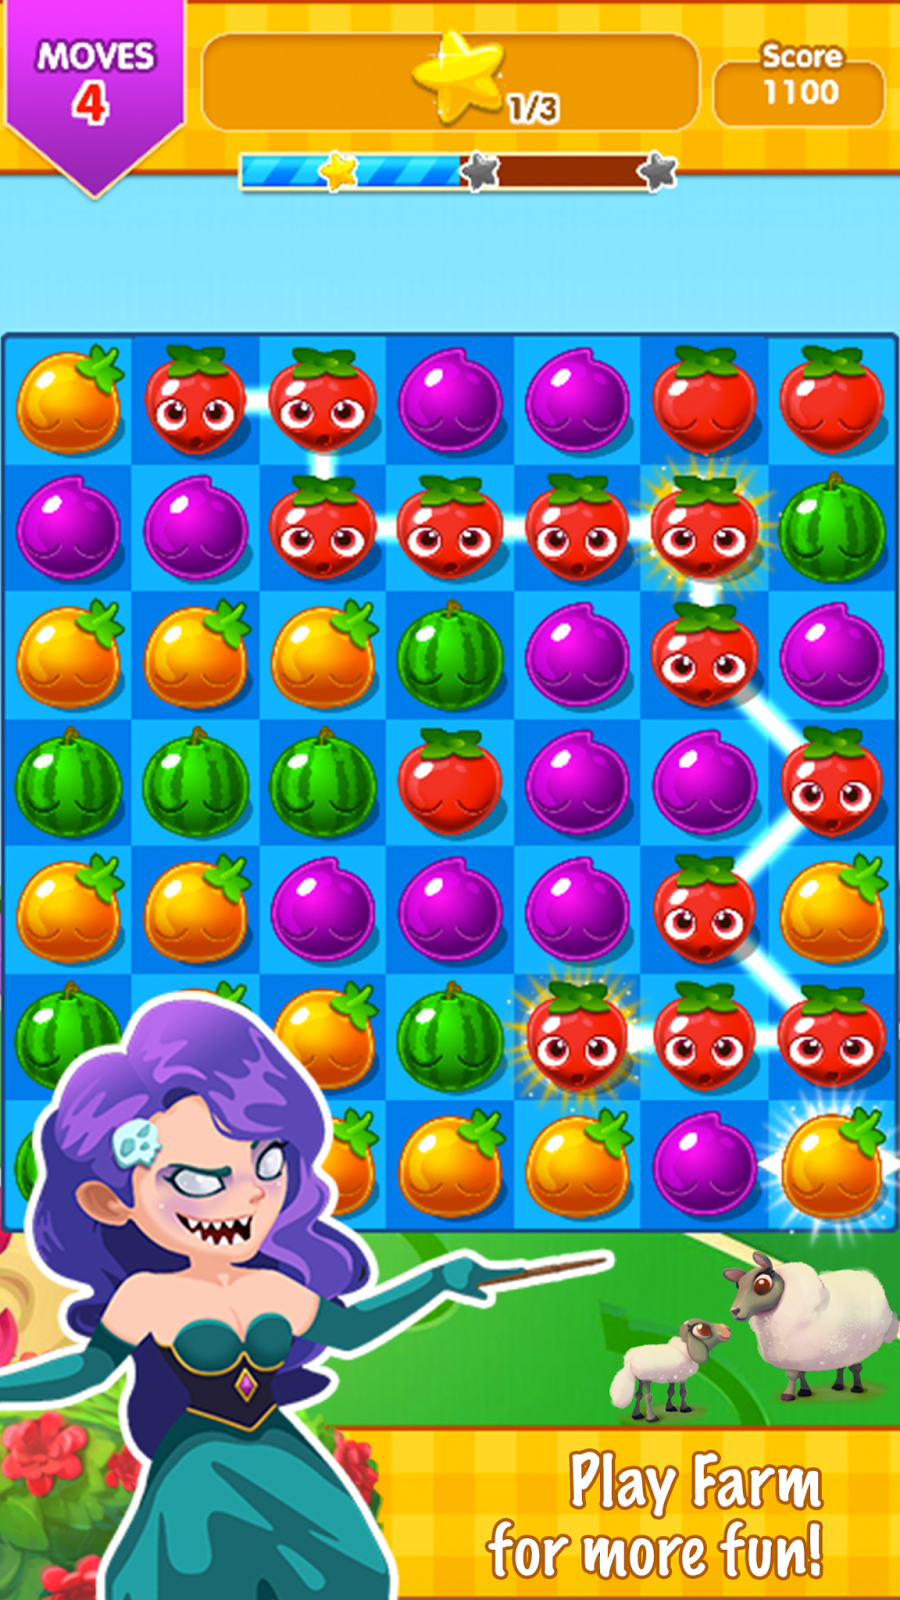 Bubble fruits game - New Game Play Elements Is Embedded In This Classic Fresh Fruit Farmer With Rainbow Fruits Bubble Fruits That Can Break And Eliminate A Big Bag Of Fruit